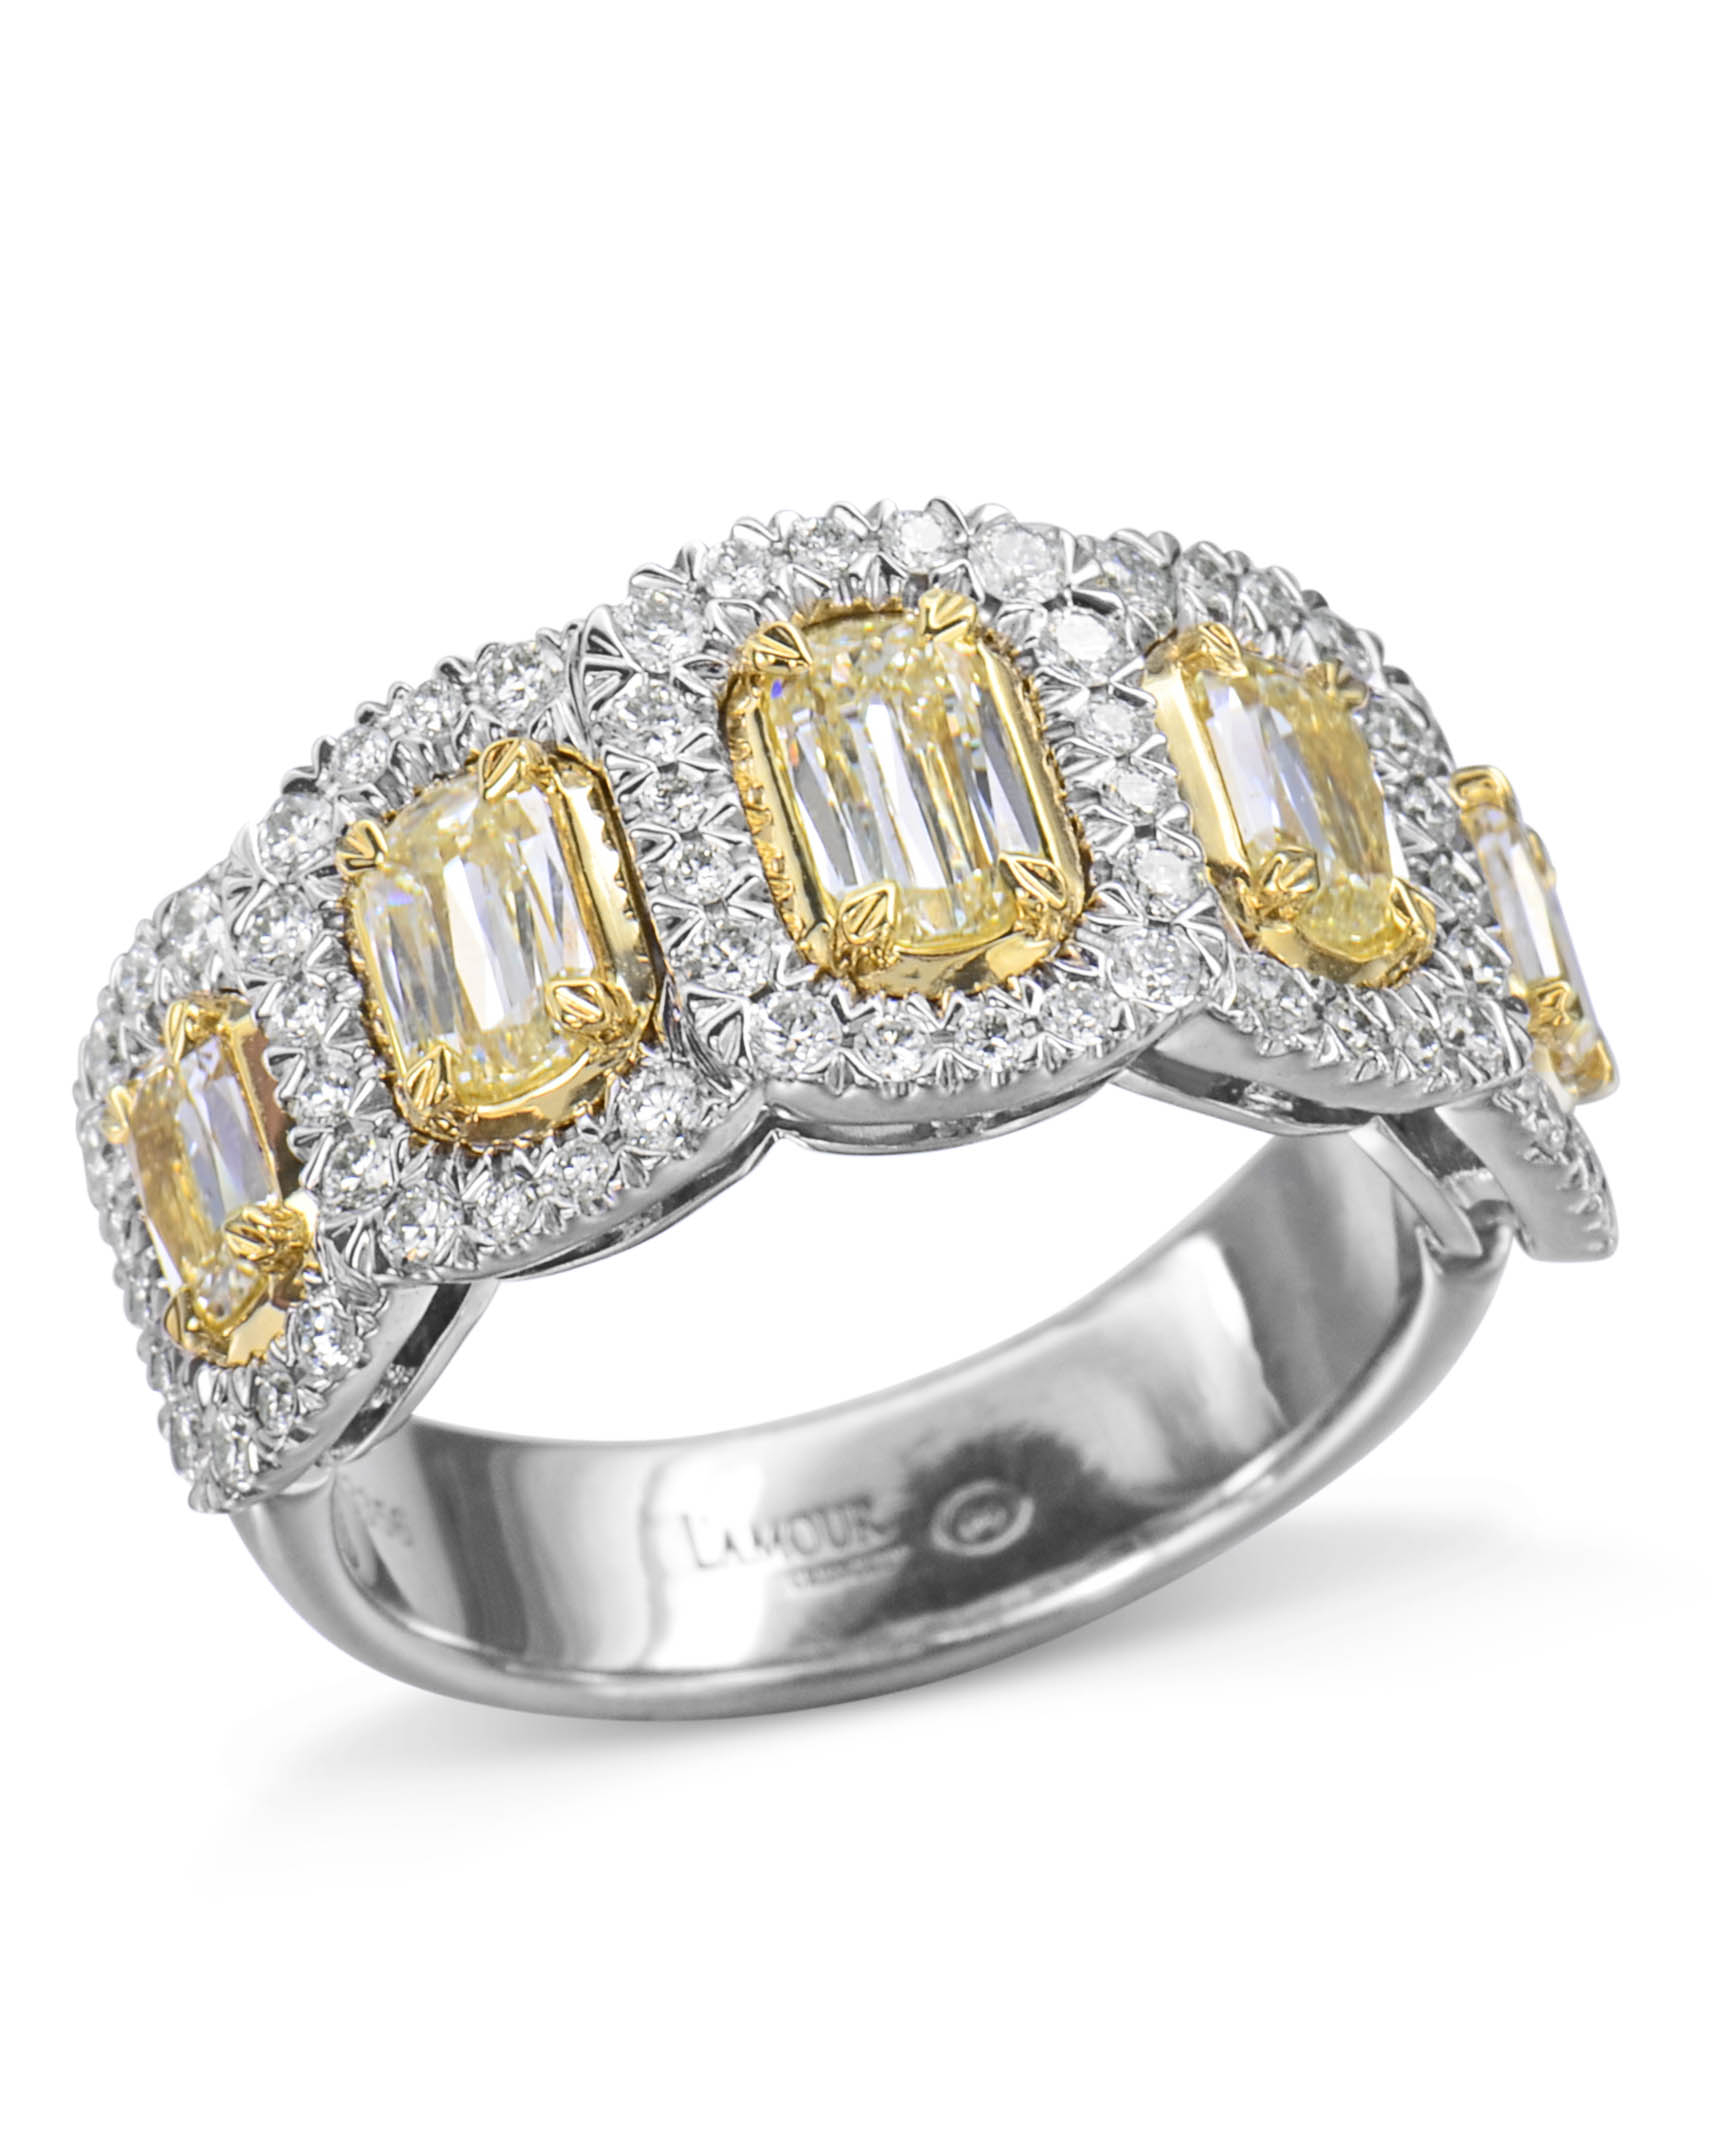 5 Stone Oval Yellow Diamond Ring With Regard To Oval Shaped Yellow Diamond Rings (View 12 of 25)